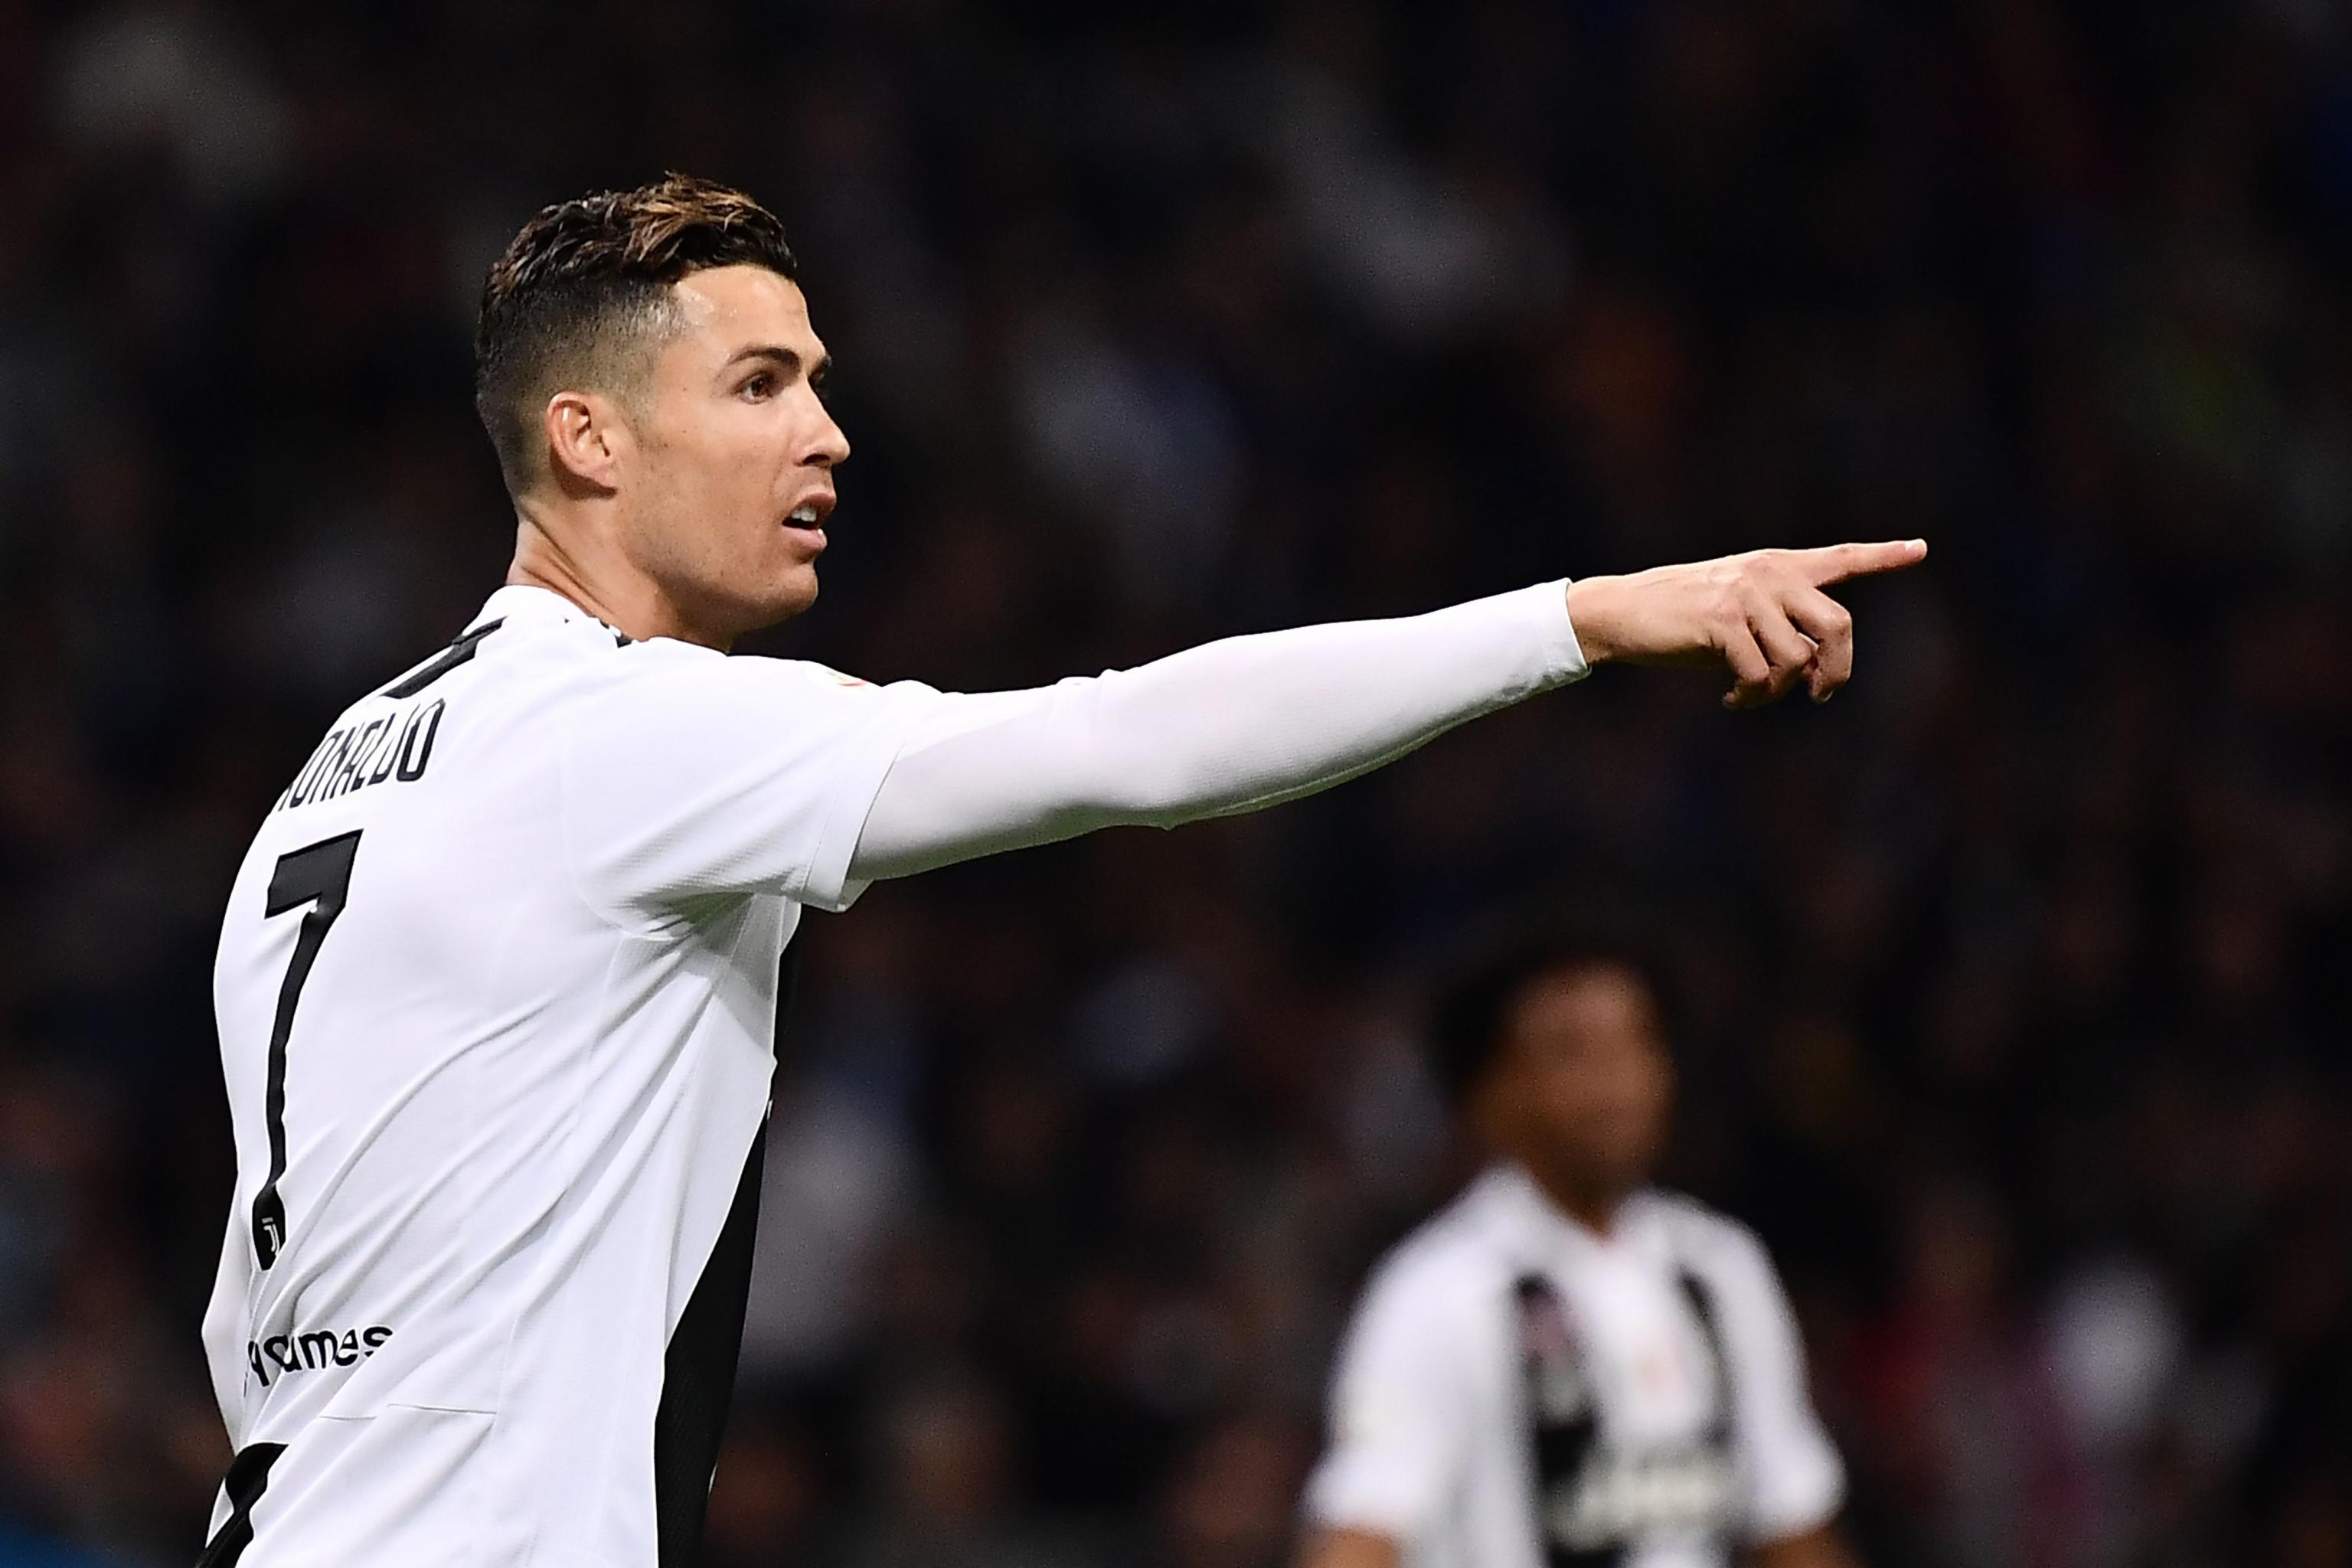 Cristiano Ronaldo Juventus Schedule Released For 2019 20 Season Bleacher Report Latest News Videos And Highlights